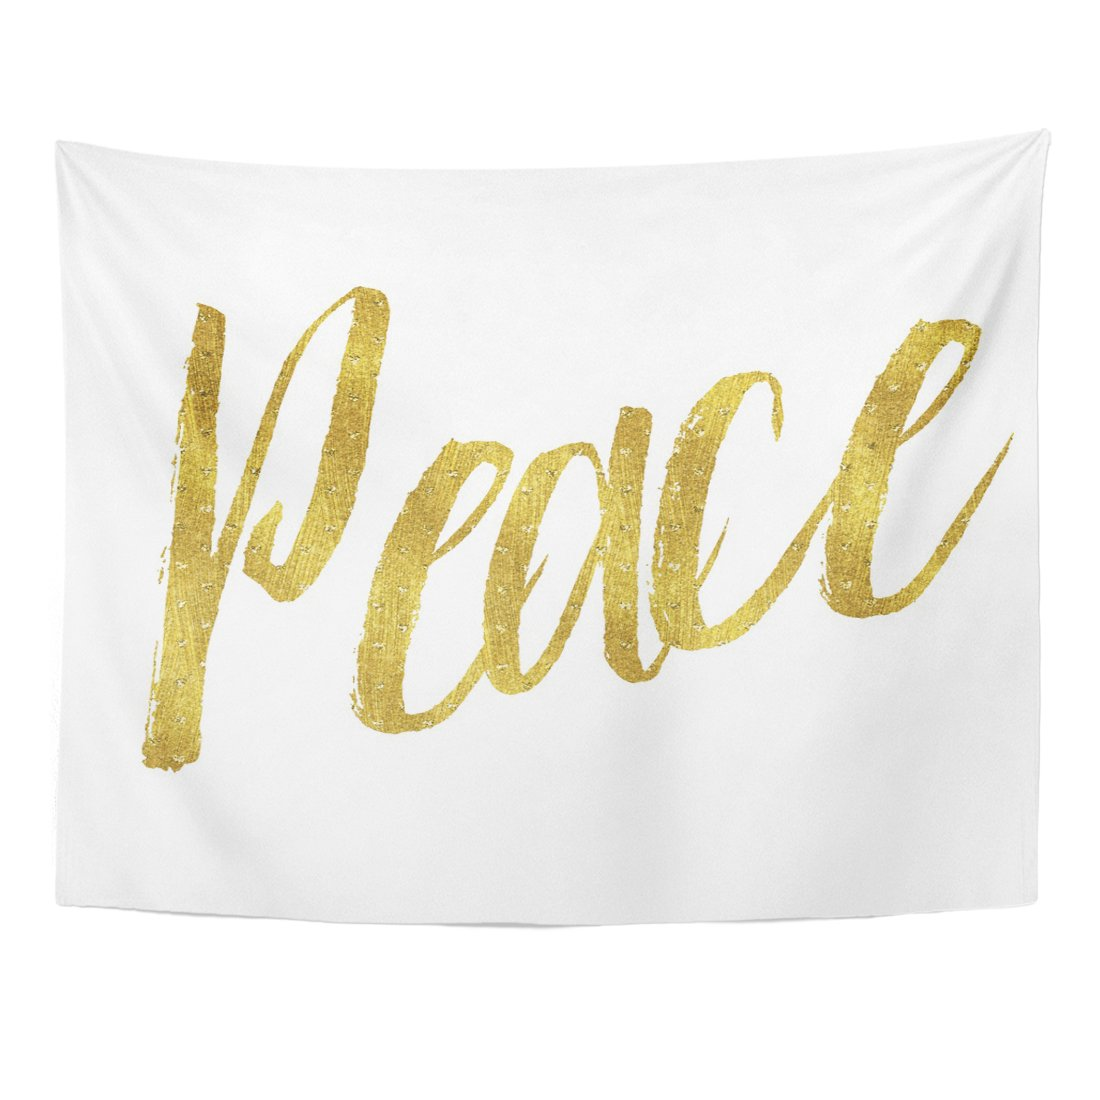 VaryHome Tapestry Glittery Peace Gold Faux Metallic Inspirational Christmas Christian Quote White Motivational Home Decor Wall Hanging for Living Room Bedroom Dorm 60x80 Inches by VaryHome